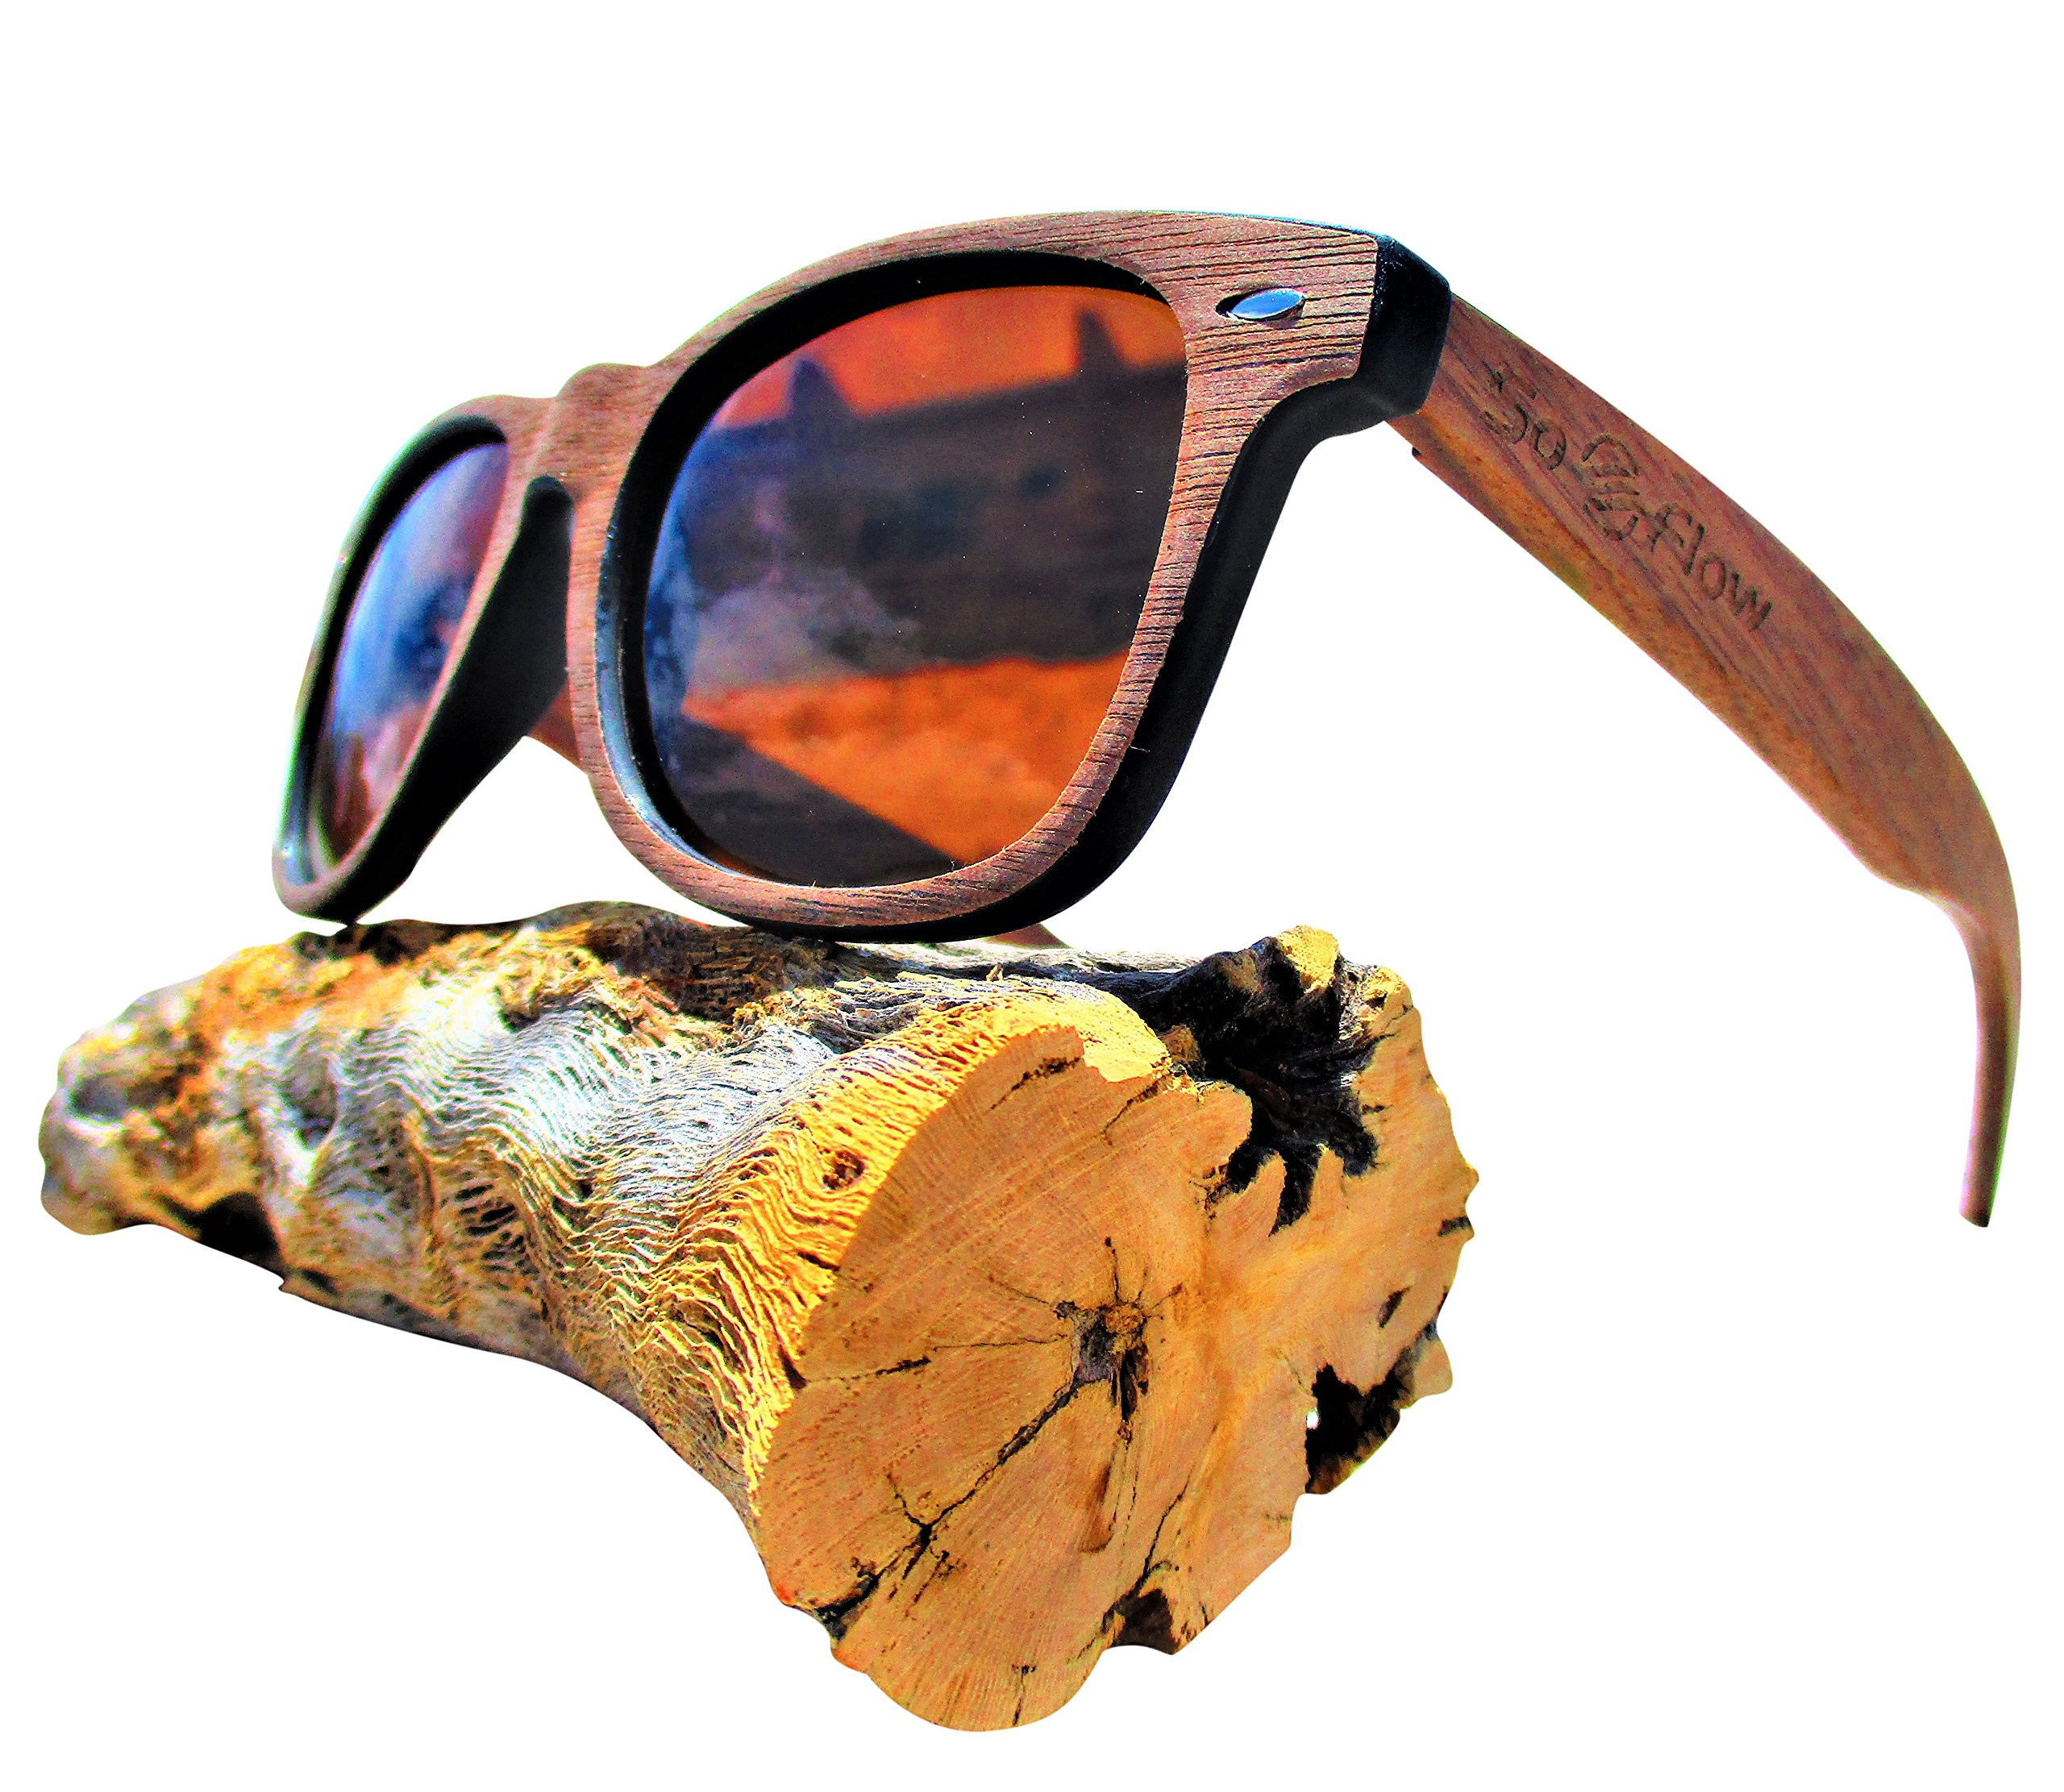 Polarized Brown Walnut Wood Sunglasses - Wooden - Wayfarer - Men - Women - UV400